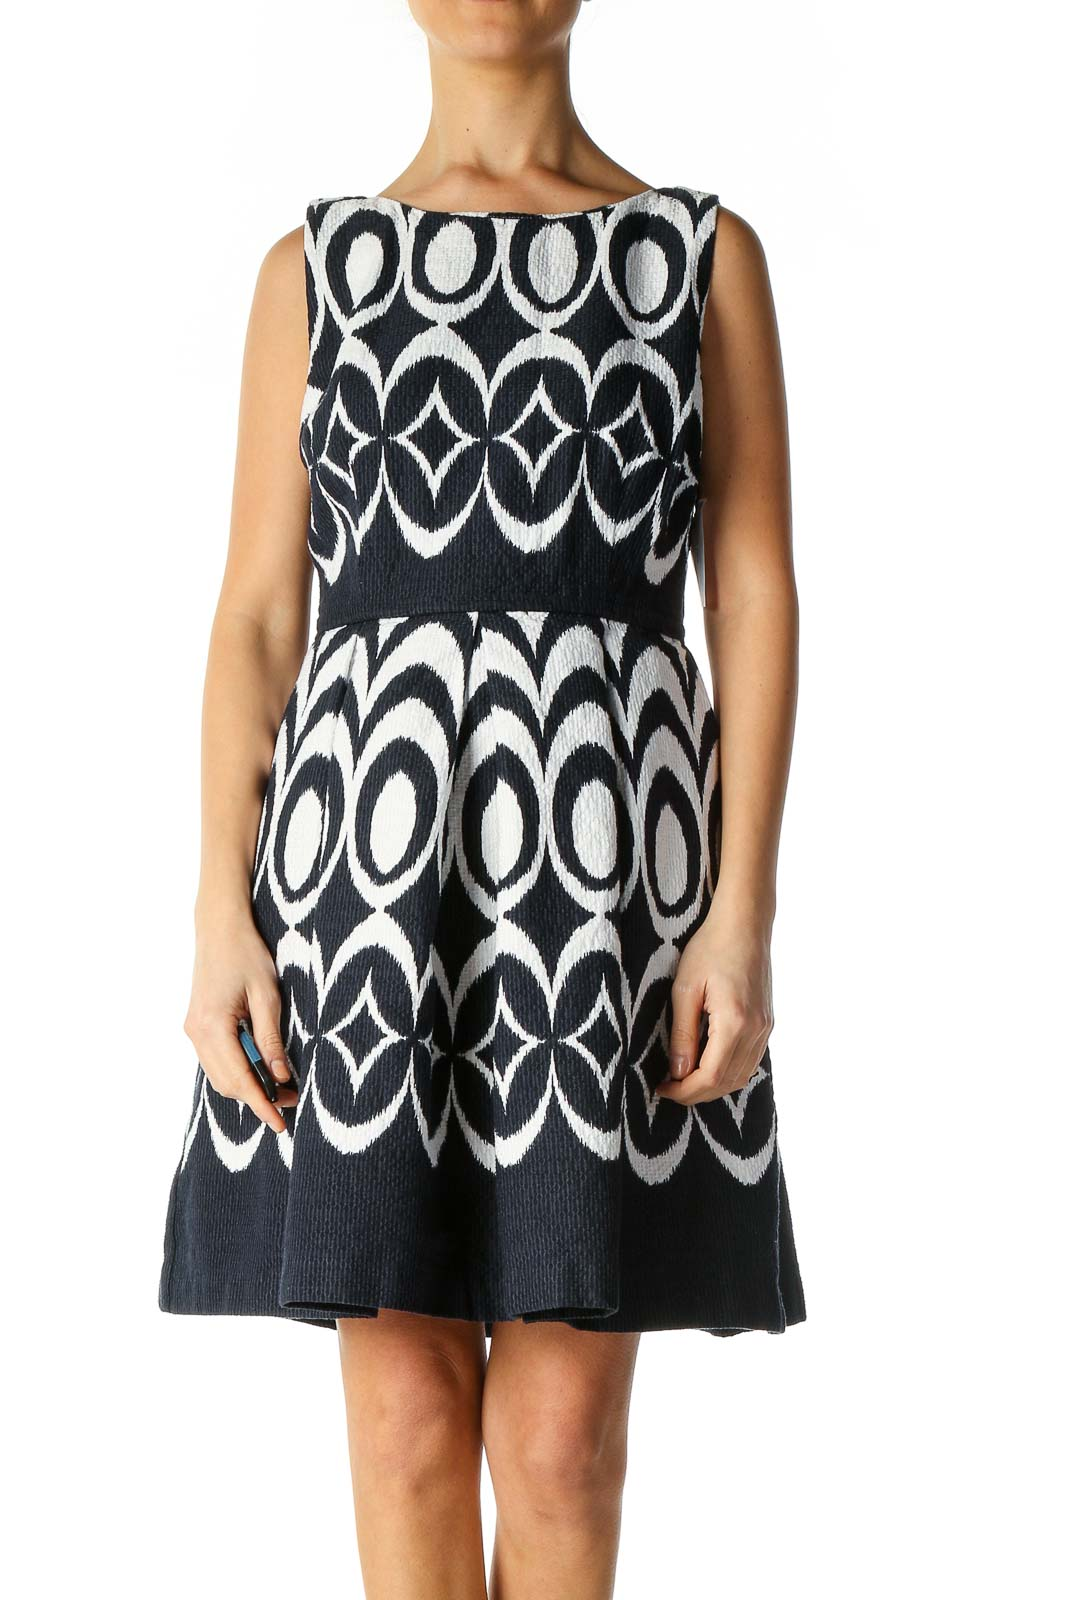 White Graphic Print A-Line Dress Front